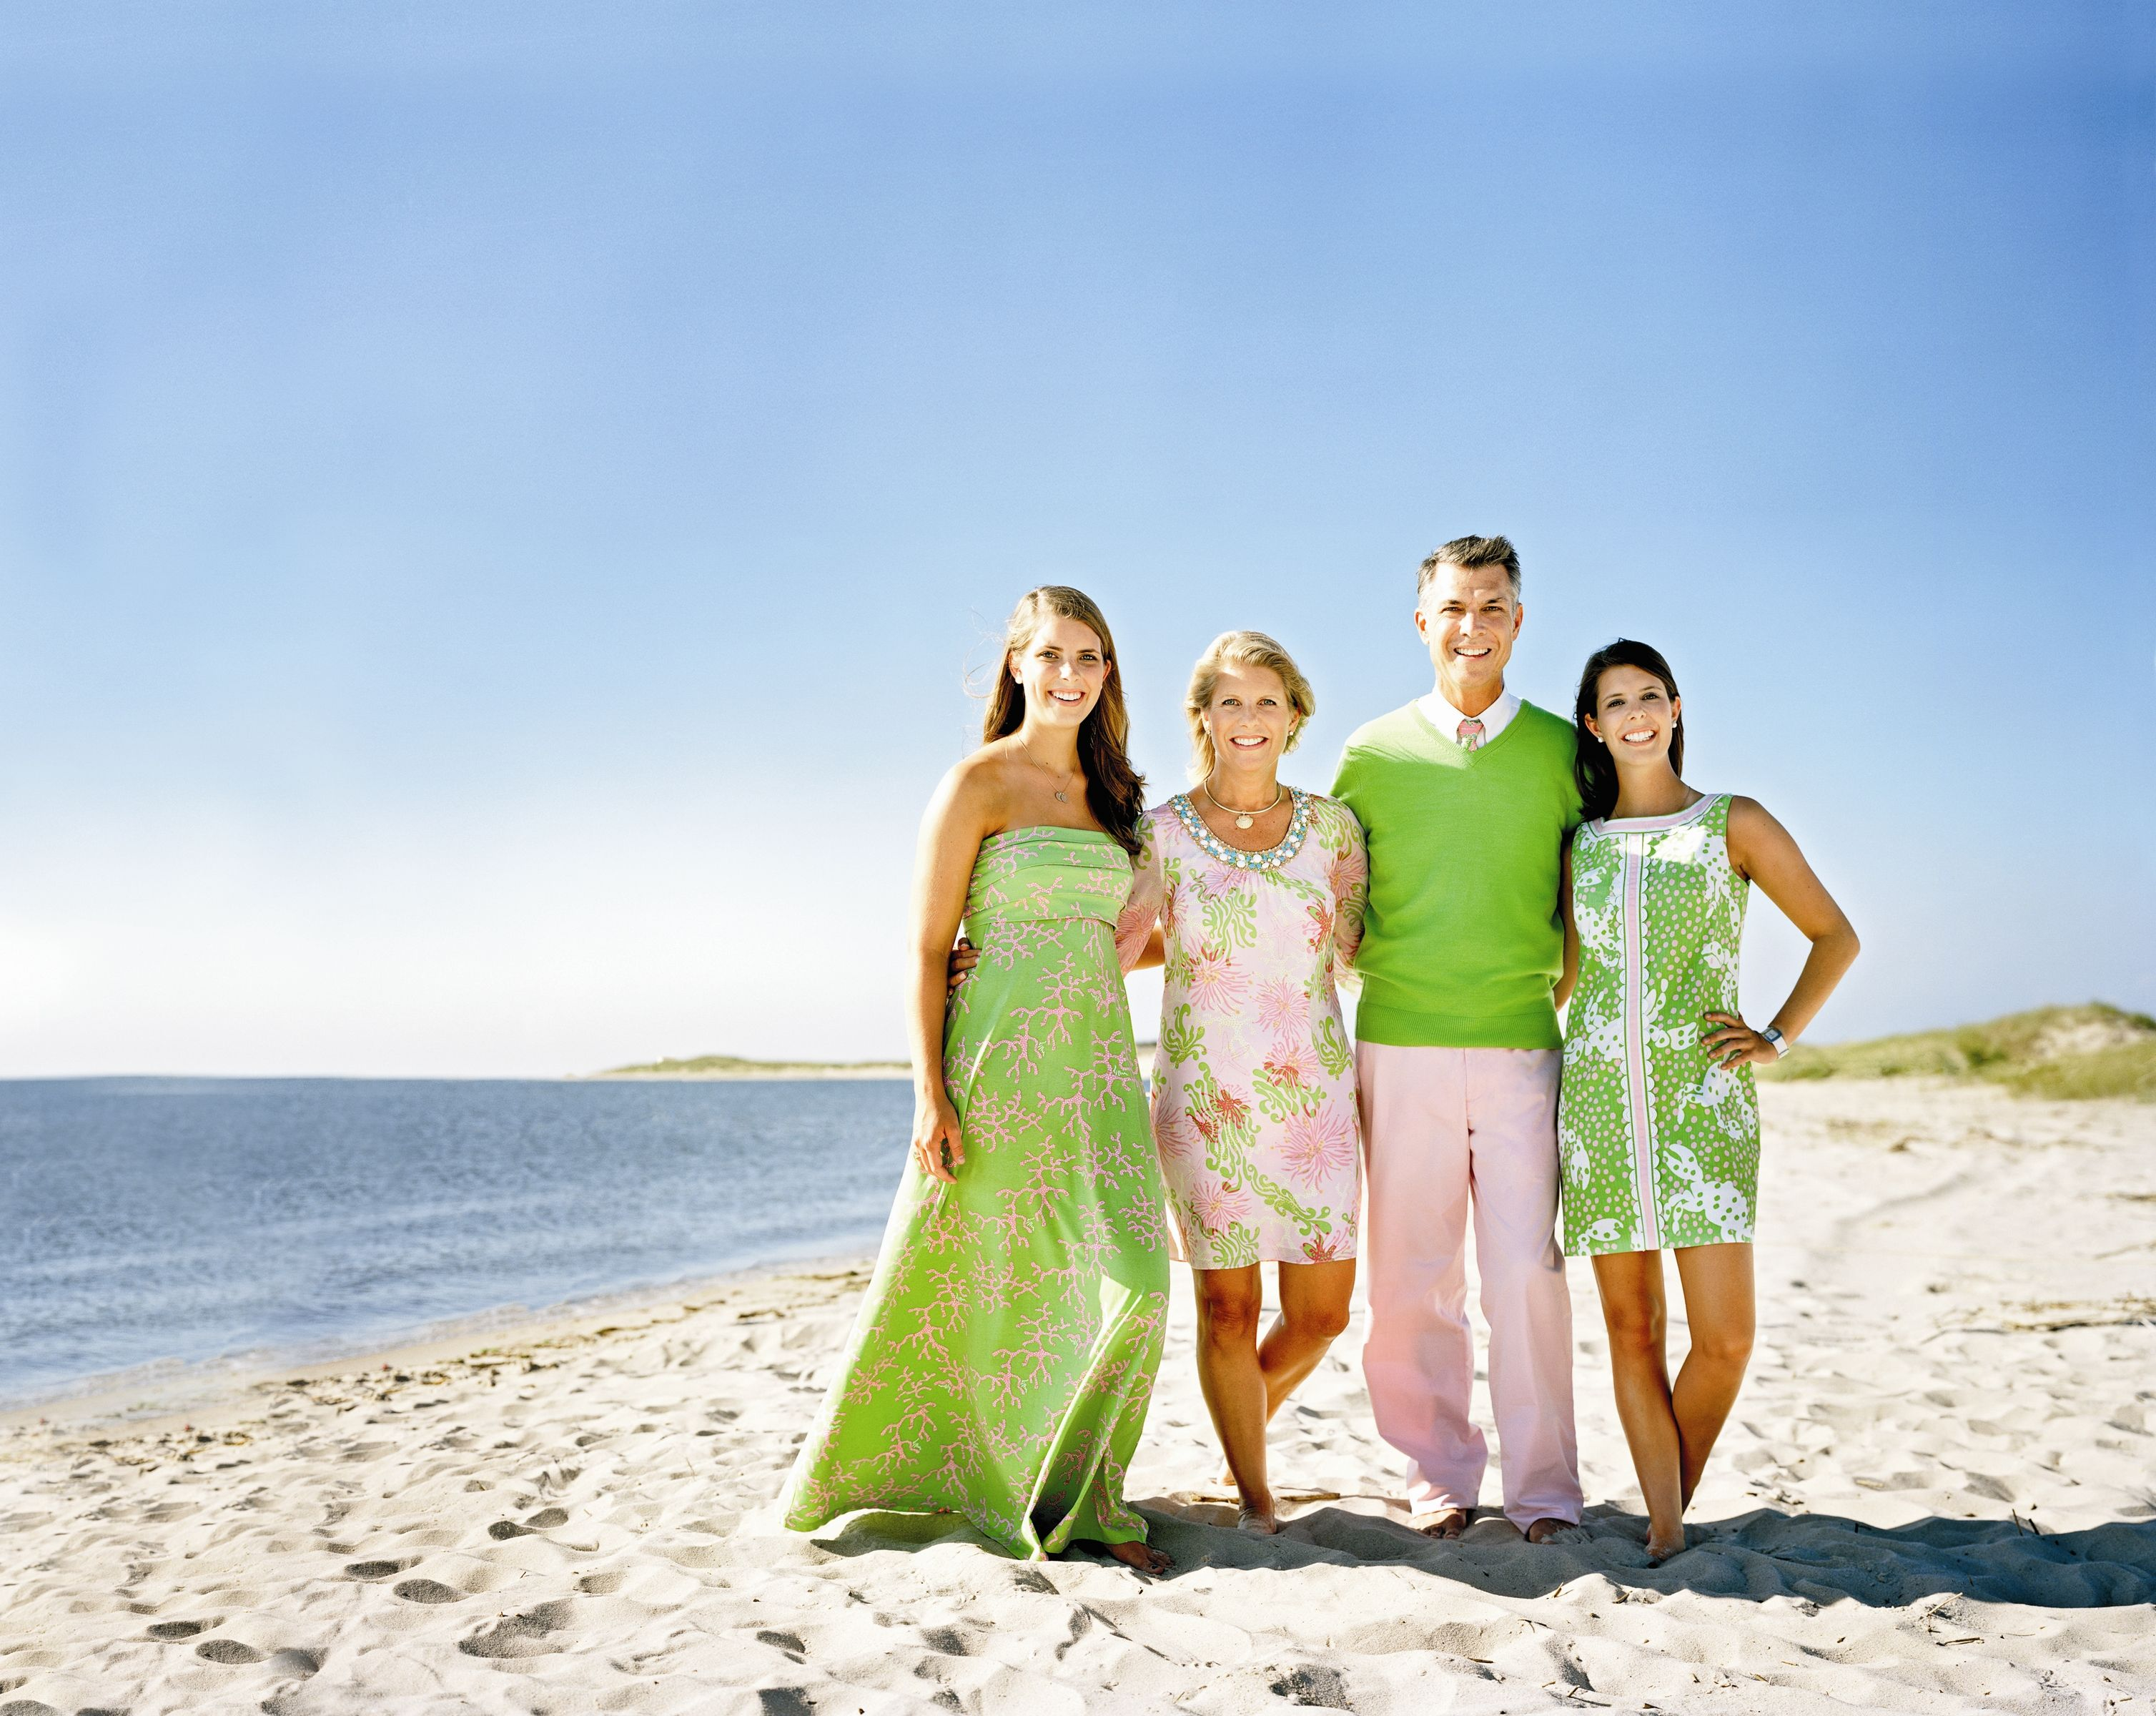 Family Beach Photos What To Wear For Family Pictures On The Beach Here Is Vikki And